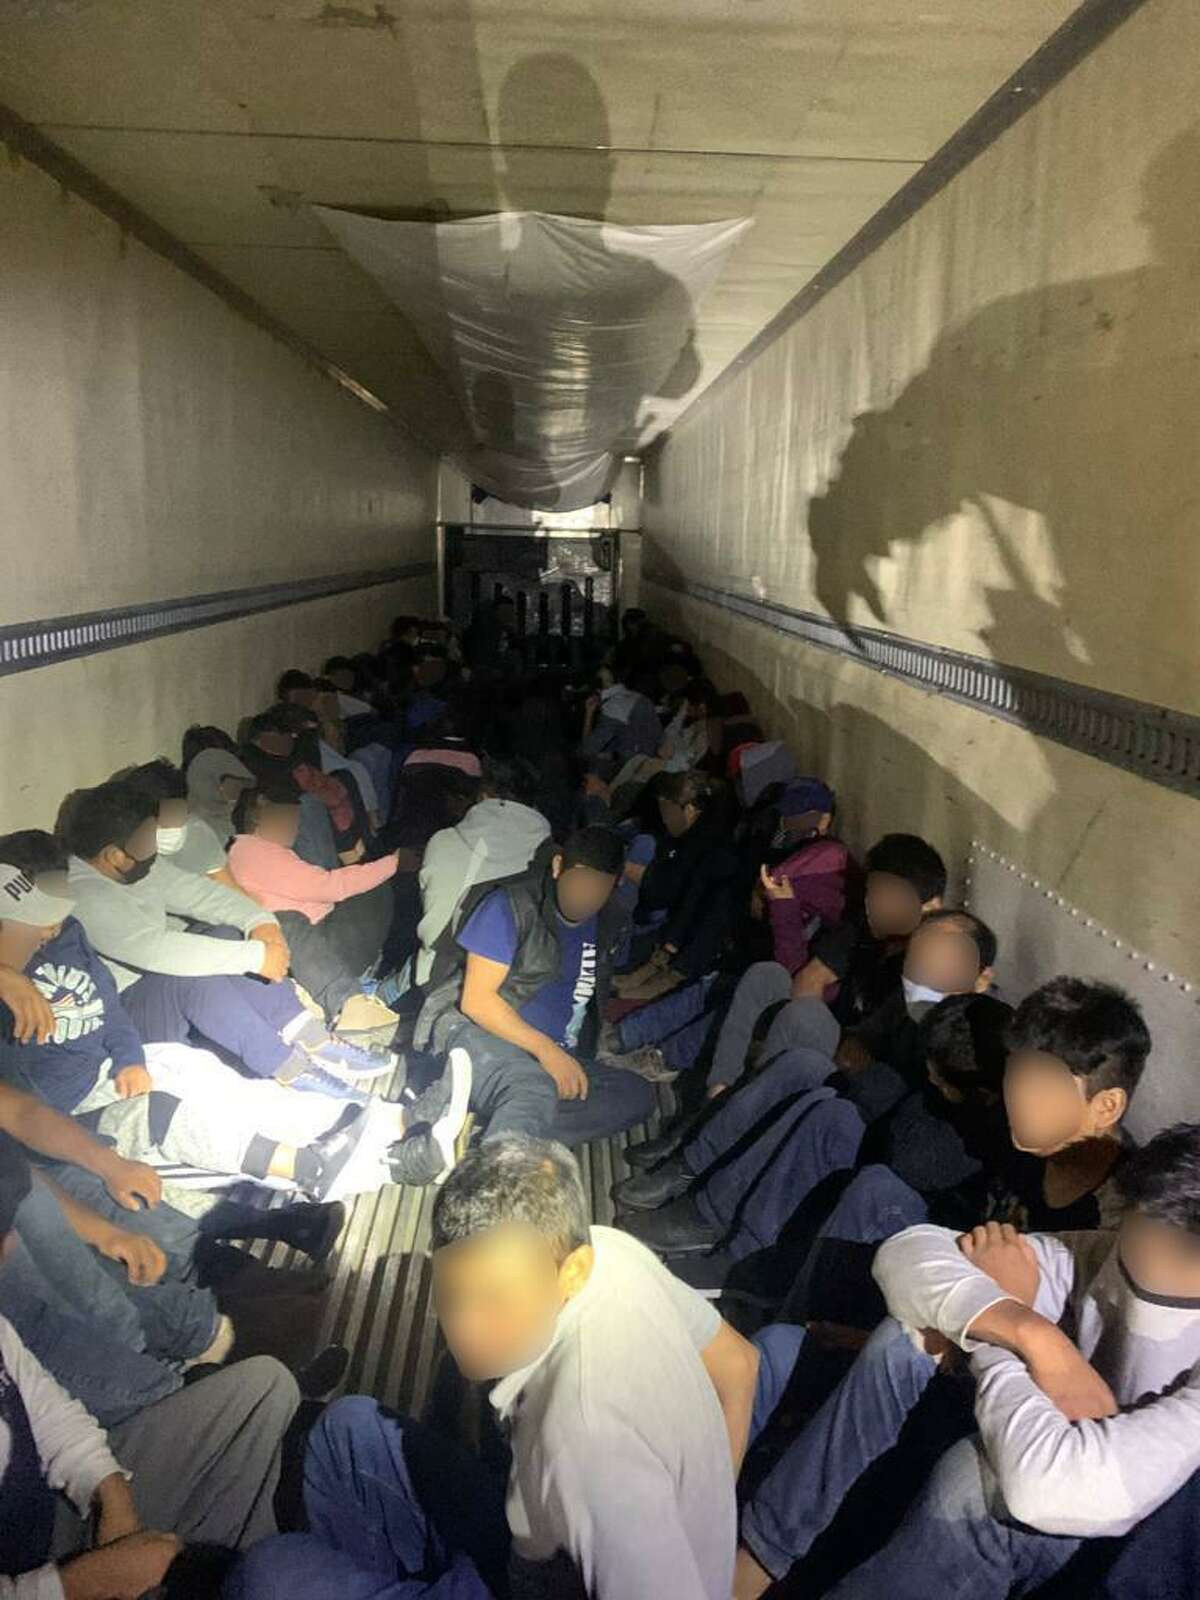 U.S. Border Patrol agents said they discovered these 86 people in the back of a trailer. All were determined to be immigrants who had crossed the border illegally.